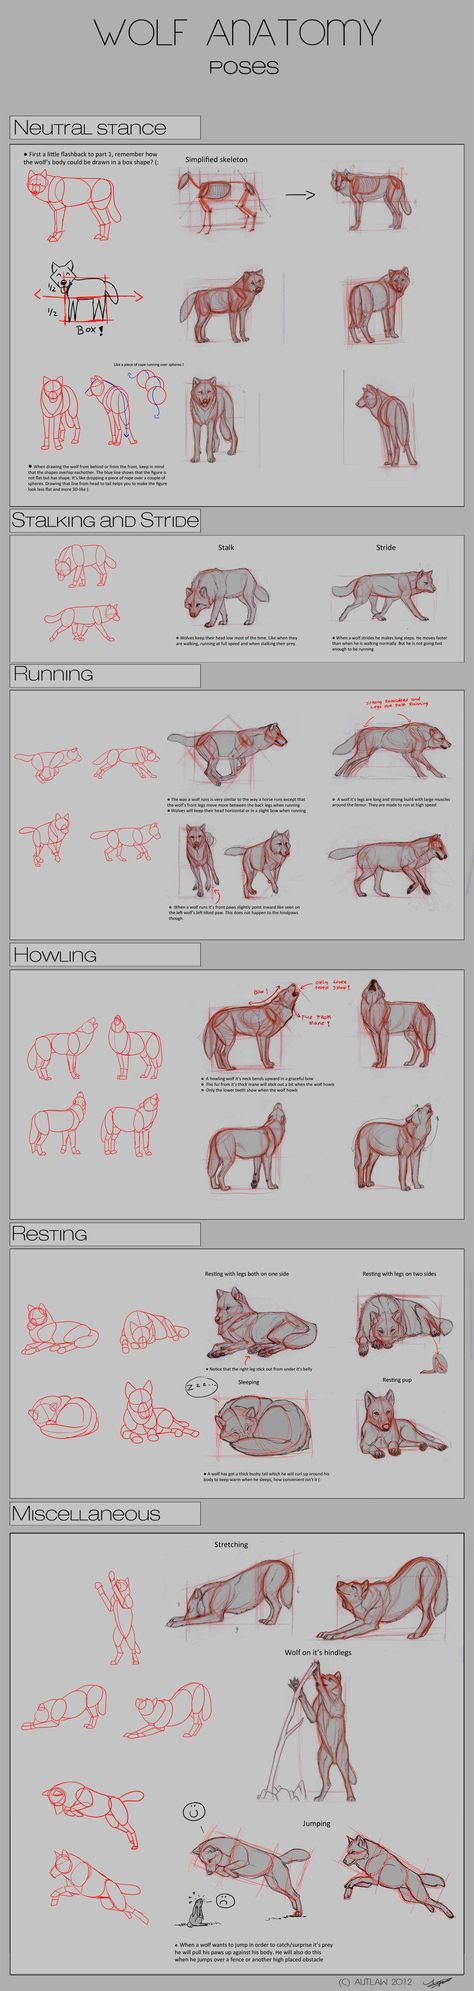 Wolf Anatomy - Part 2 by *Autlaw on deviantART || CHARACTER DESIGN REFERENCES | Find more at https://www.facebook.com/CharacterDesignReferences if you're looking for: #line #art #character #design #model #sheet #illustration #best #concept #animation #drawing #archive #library #reference #anatomy #traditional #draw #development #artist #how #to #tutorial #conceptart #modelsheet #animal #animals #dog #wolf #fox #dogs